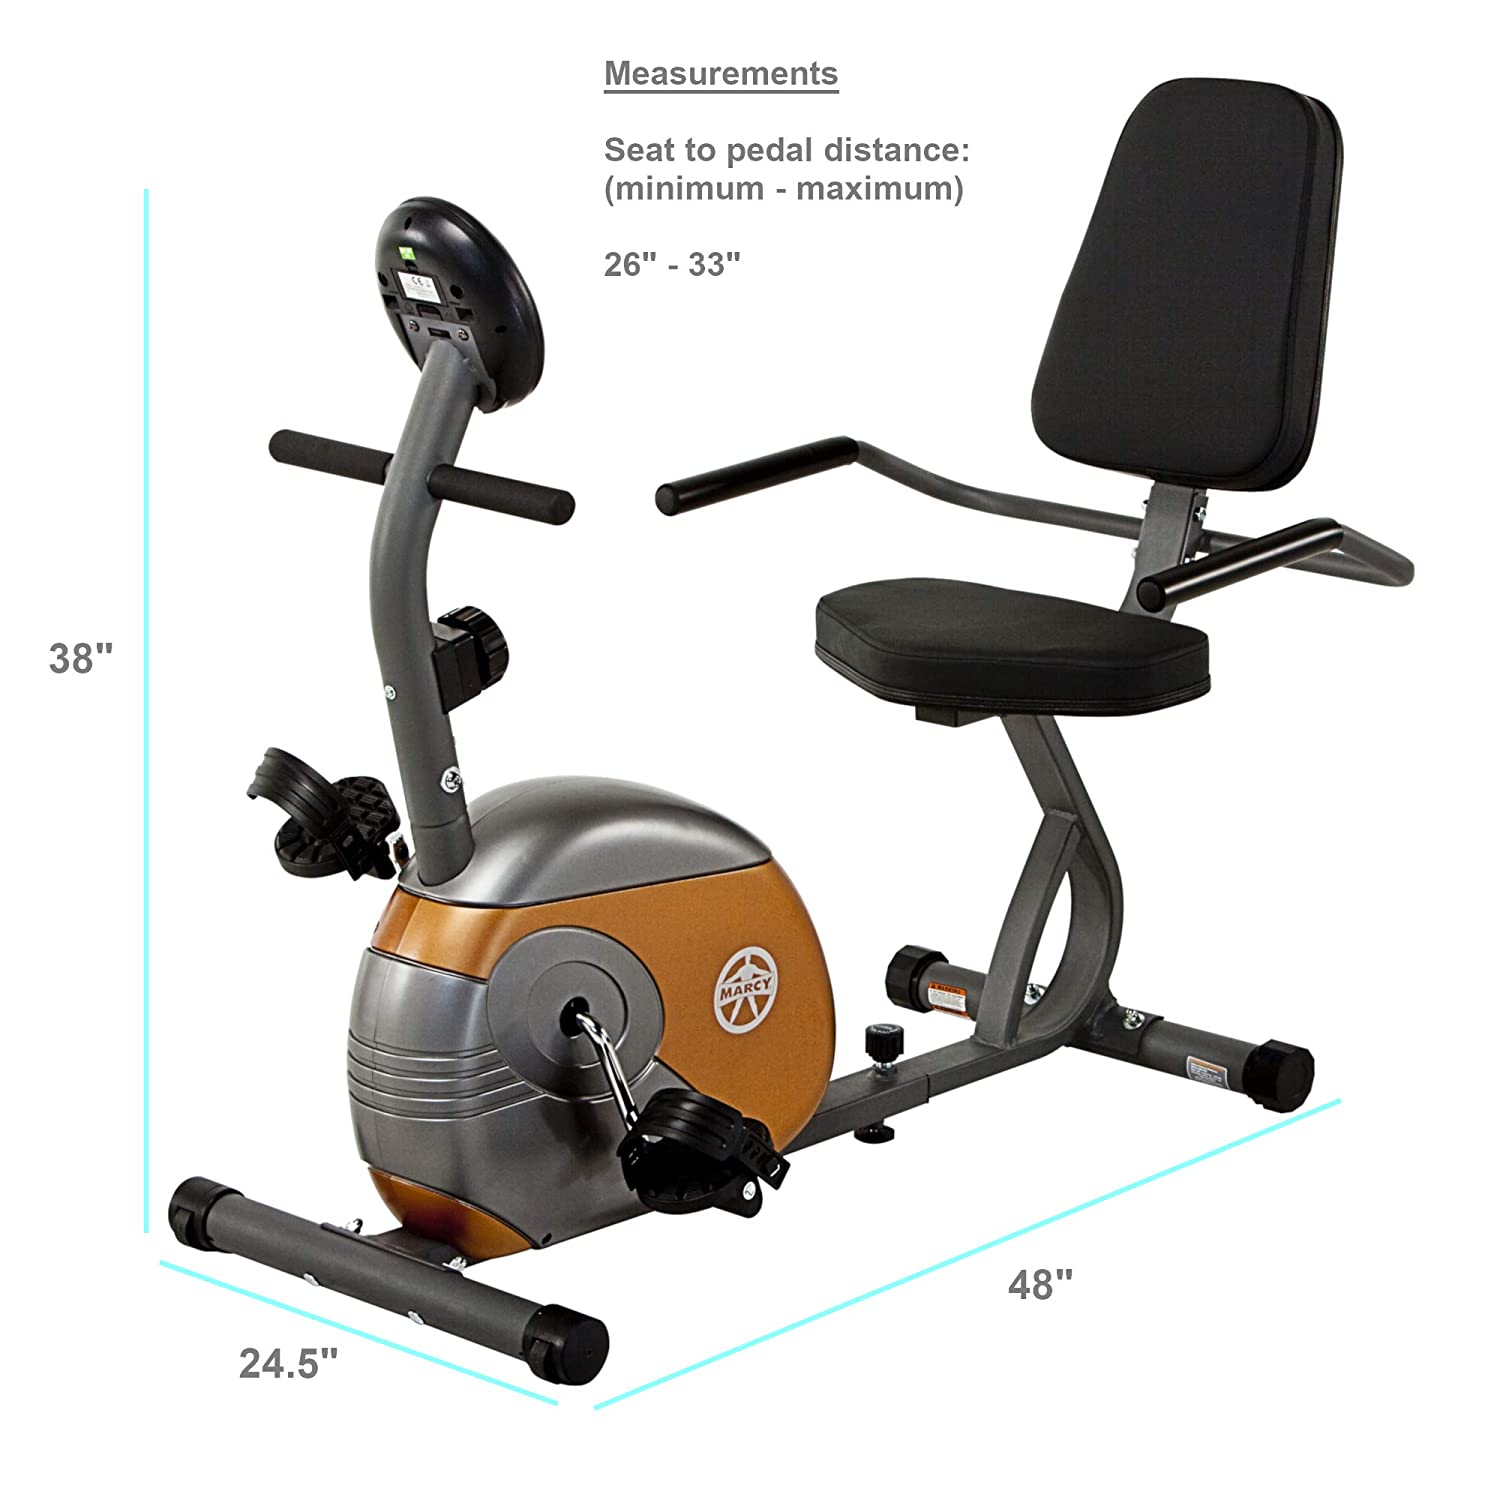 Recumbent Resistance Exercise Bike by Marcy ME-709